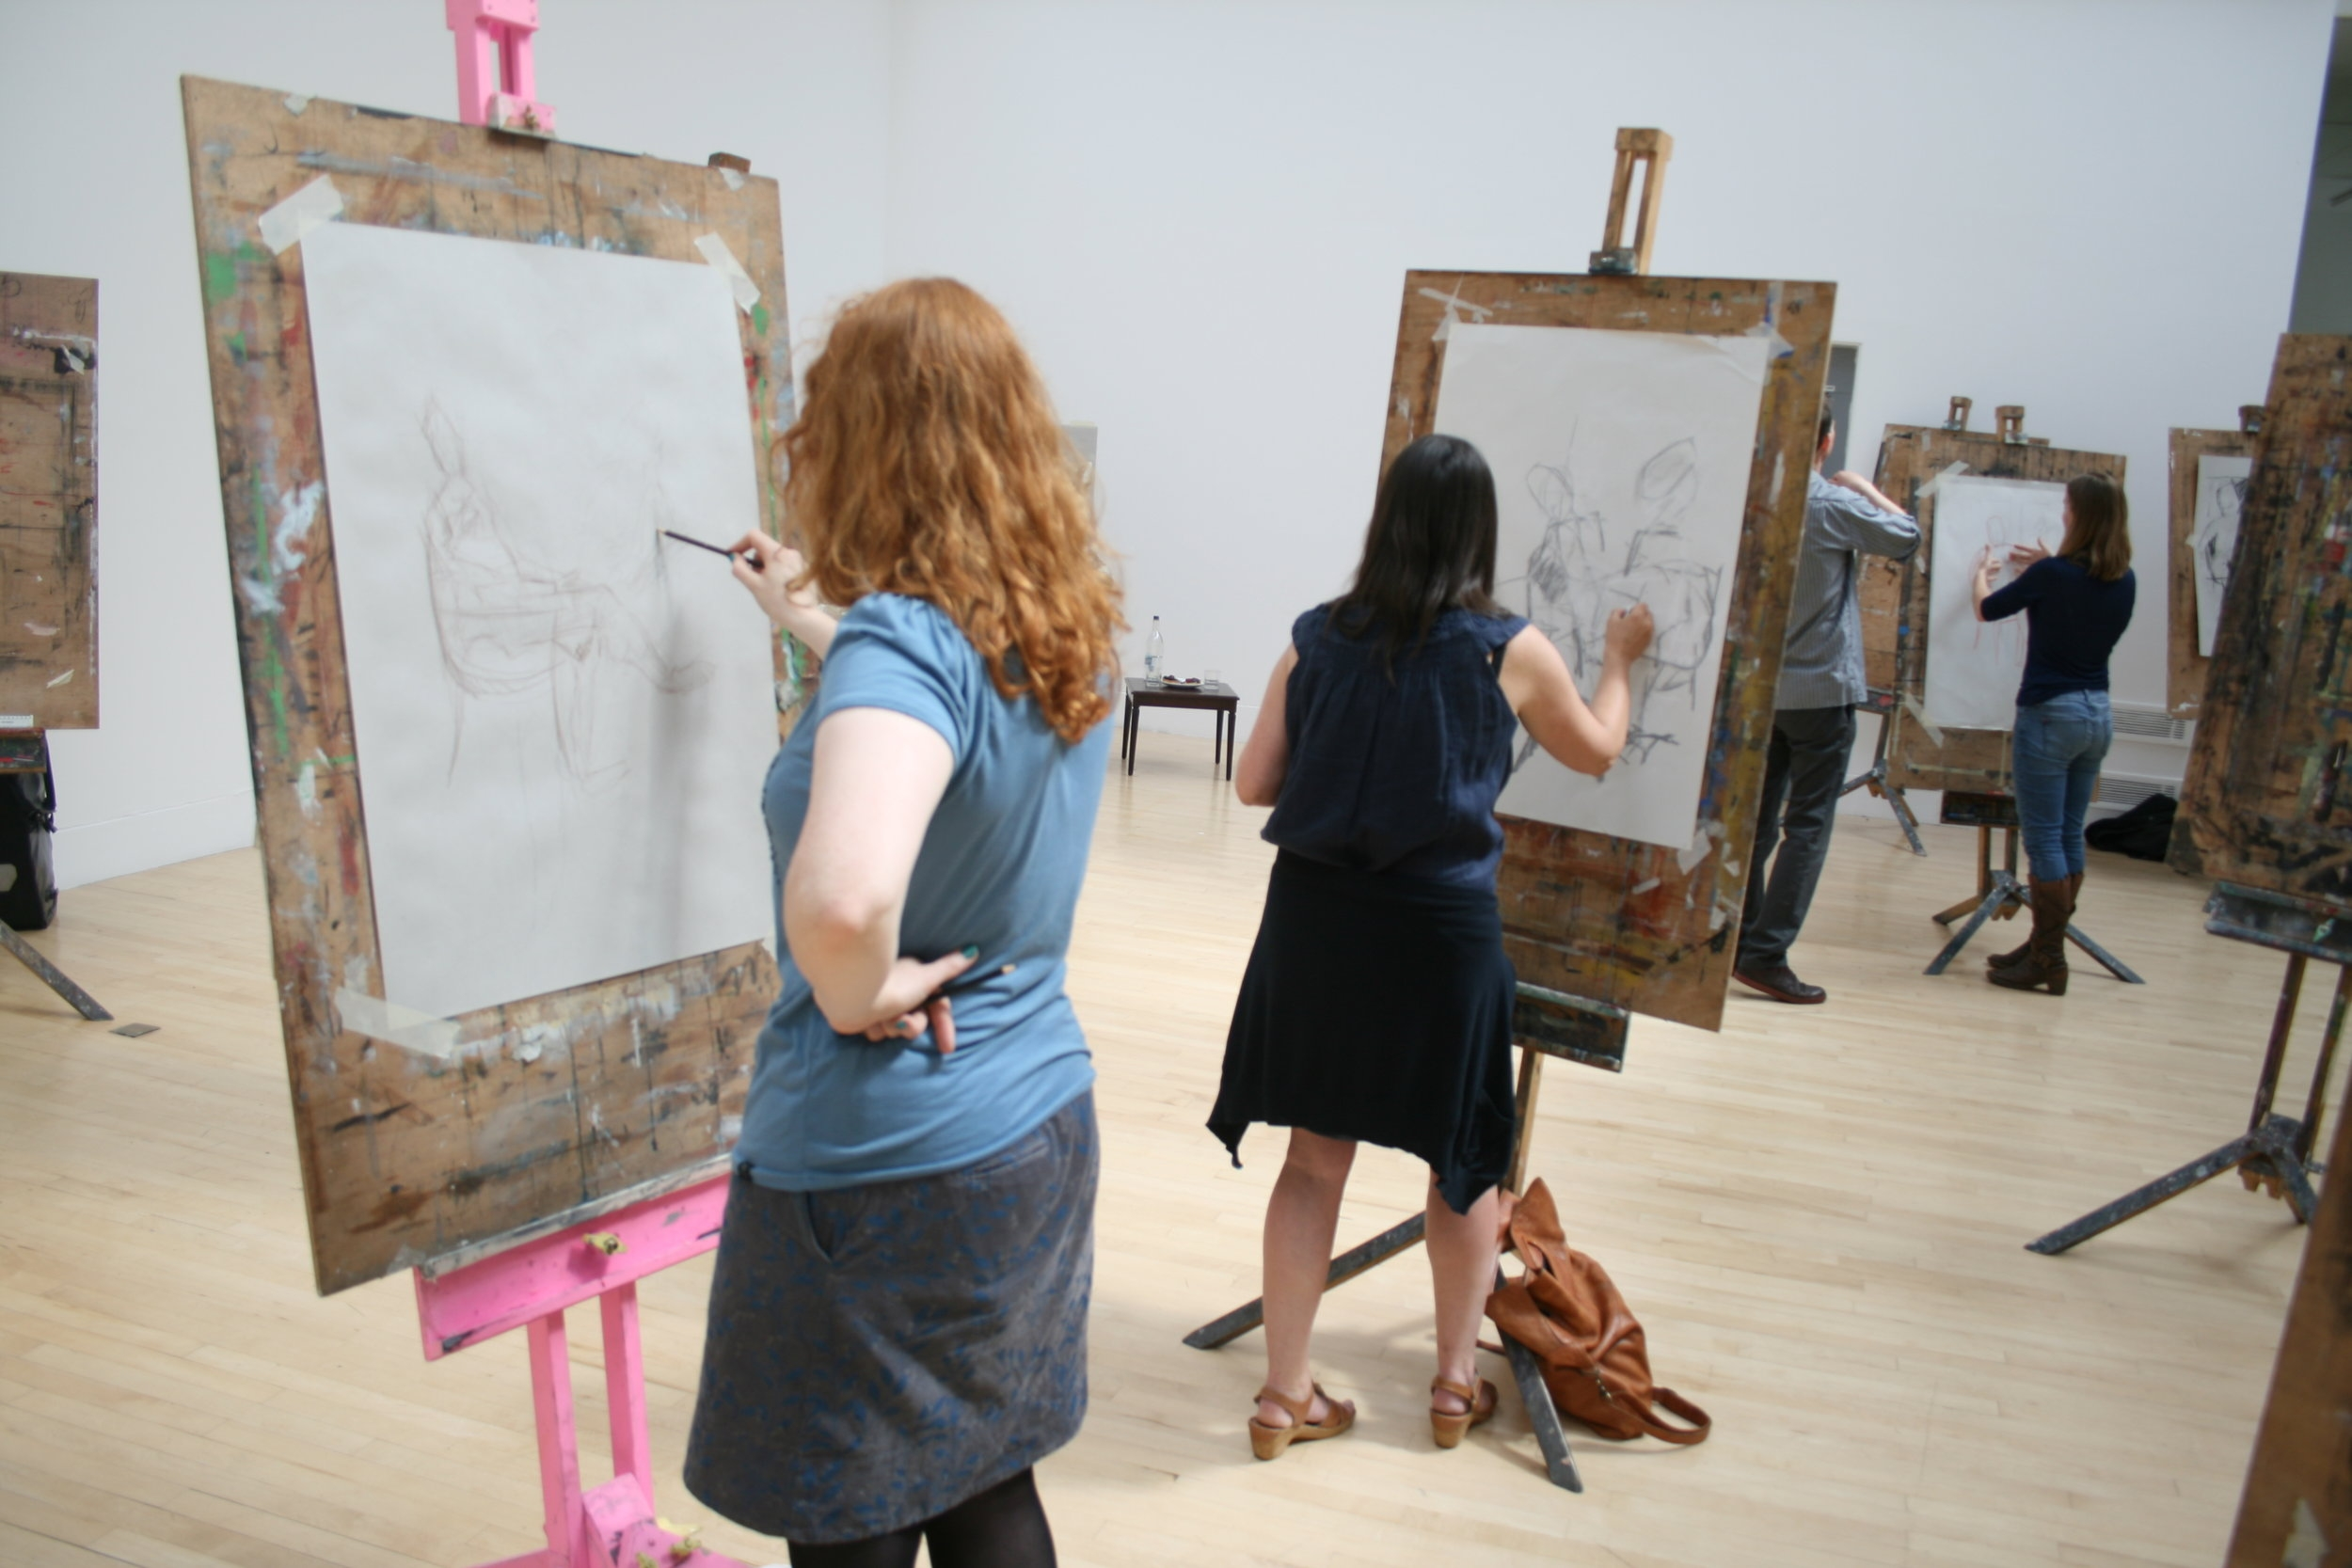 Life Drawing - TUESDAY 7PMThe 10 week course will help both experienced and beginners improve their observational and experimental drawing skills, and help to explore a variety of techniques in drawing from the life model. Using a range of media, and with both short and long poses you will endeavour to capture the essence of the pose in line, tone, colour and movement.For more information and to book your place, please call Sally on 01452 790 465